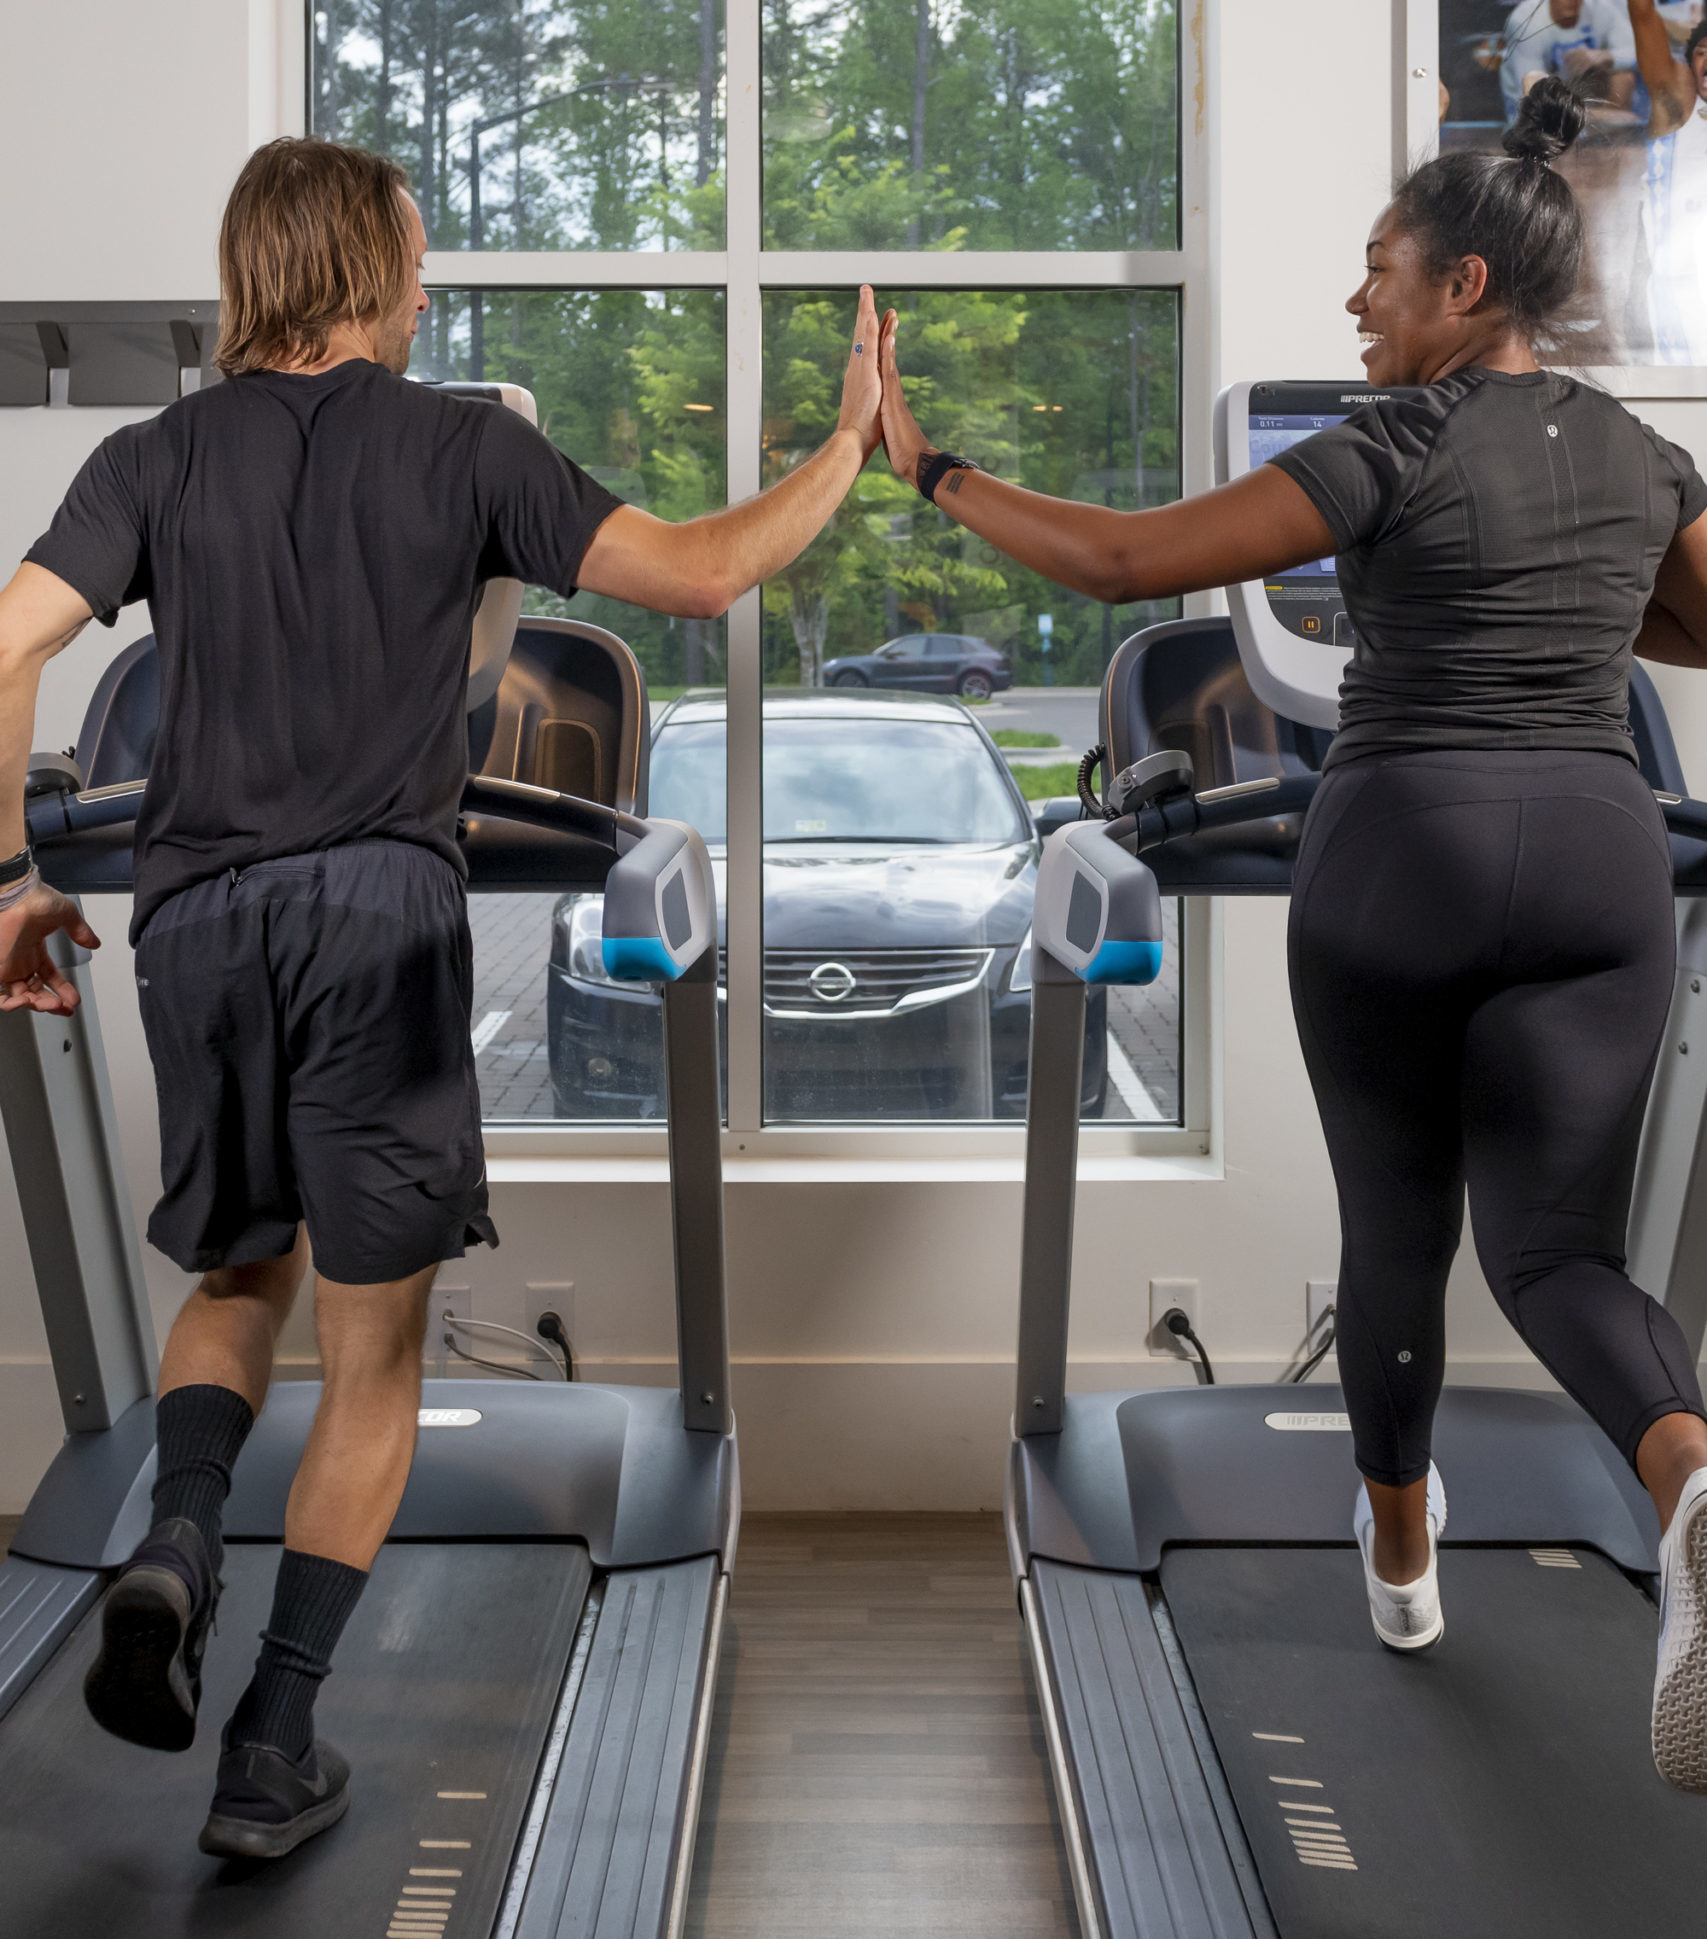 friends high-fiving on treadmills while they run and work out at evolve